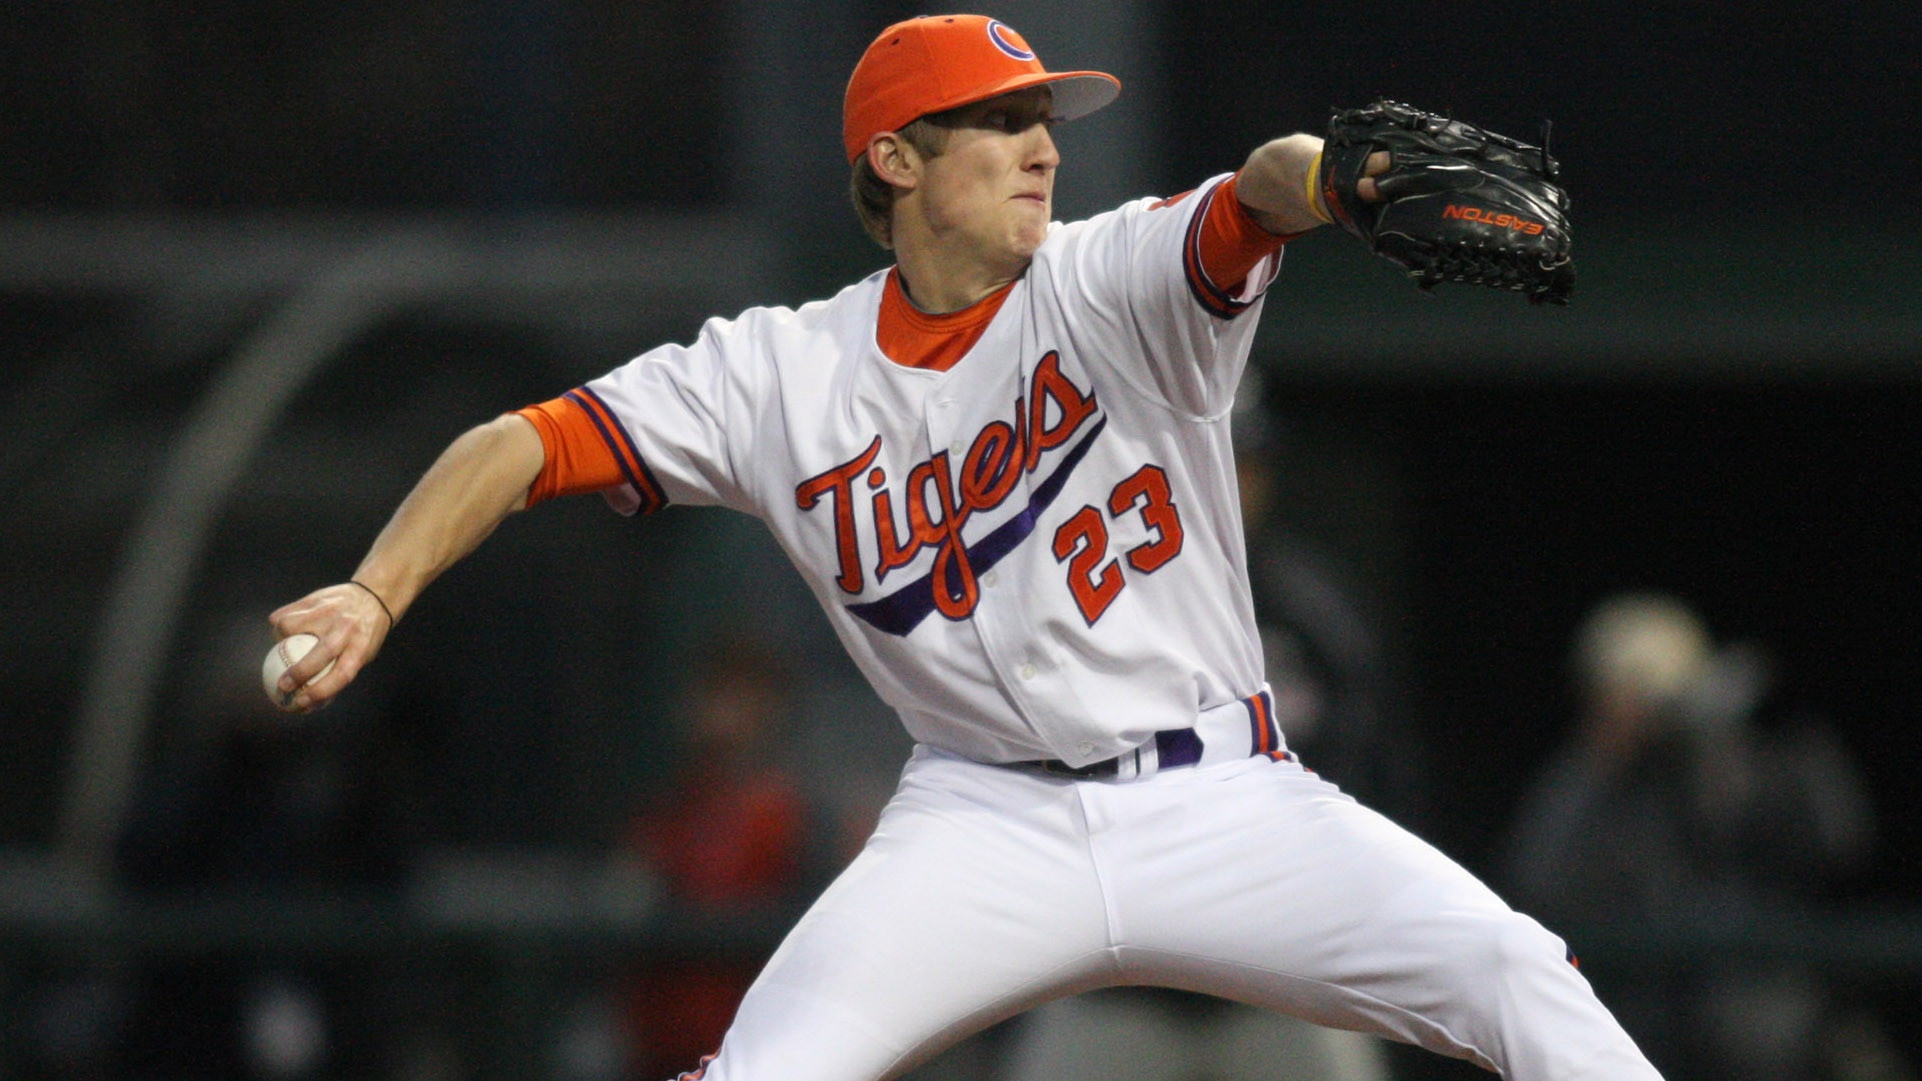 Tigers to Open ACC Play on the Road Friday-Sunday